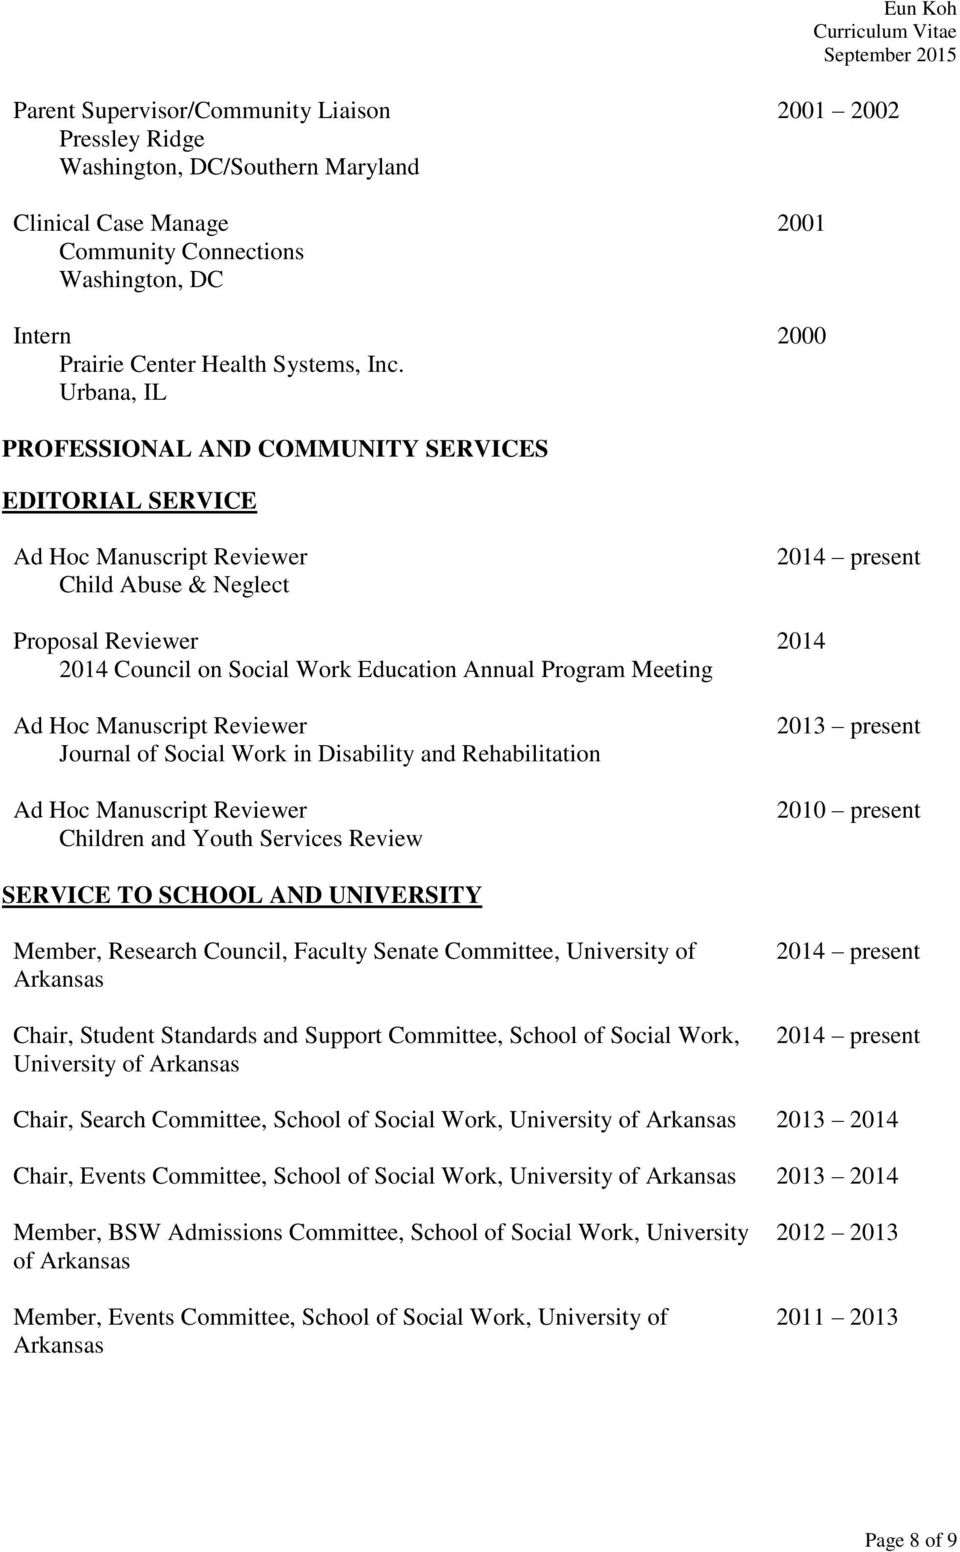 Program Meeting Ad Hoc Manuscript Reviewer Journal of Social Work in Disability and Rehabilitation Ad Hoc Manuscript Reviewer Children and Youth Services Review 2014 present 2014 2013 present 2010